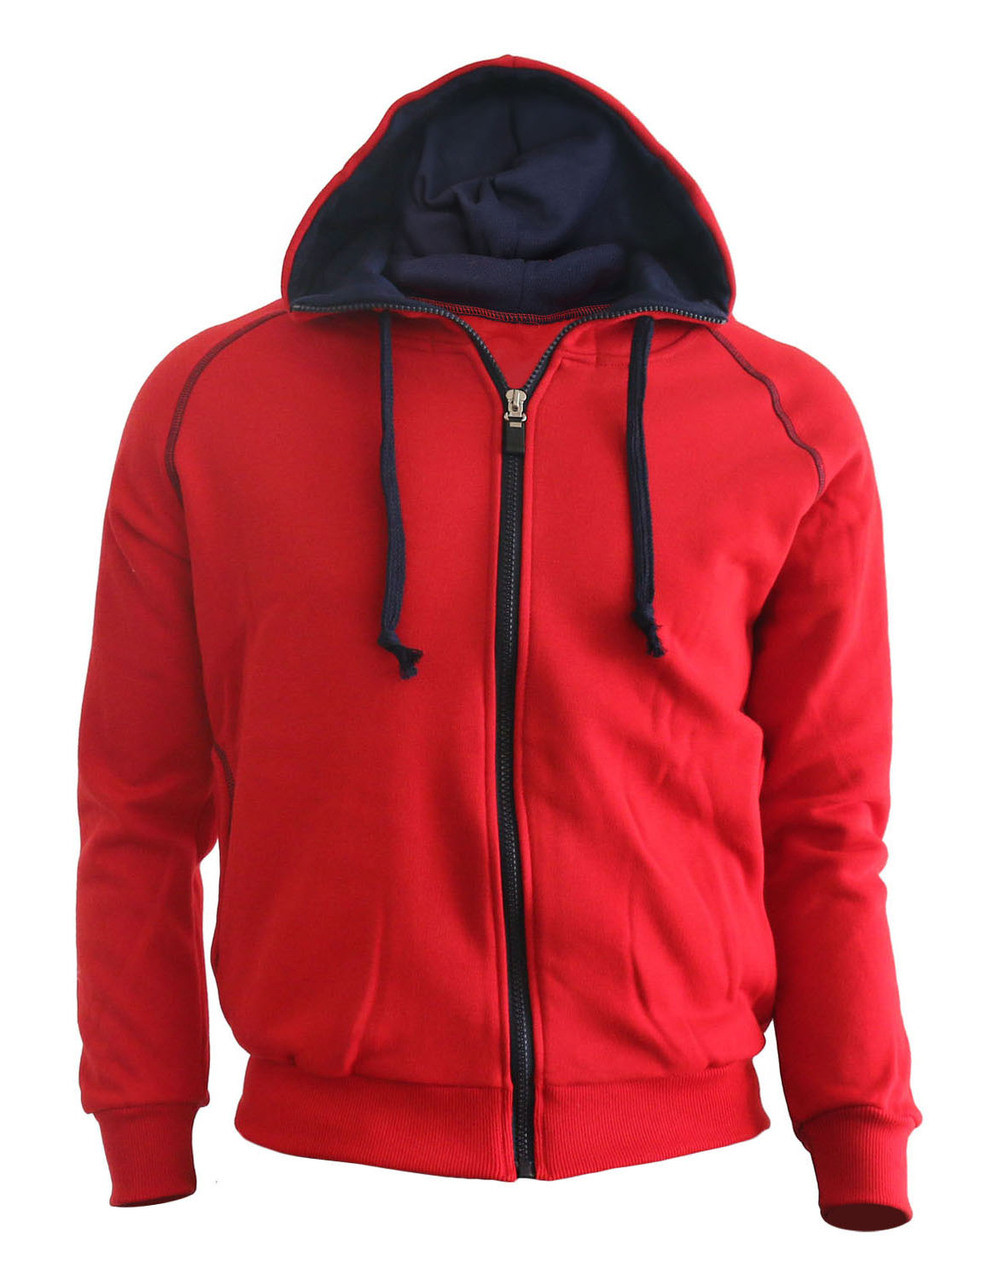 Casual warm sweat zip-Hoodie jumper of navy color hoodie zip-up jacket. (Red )